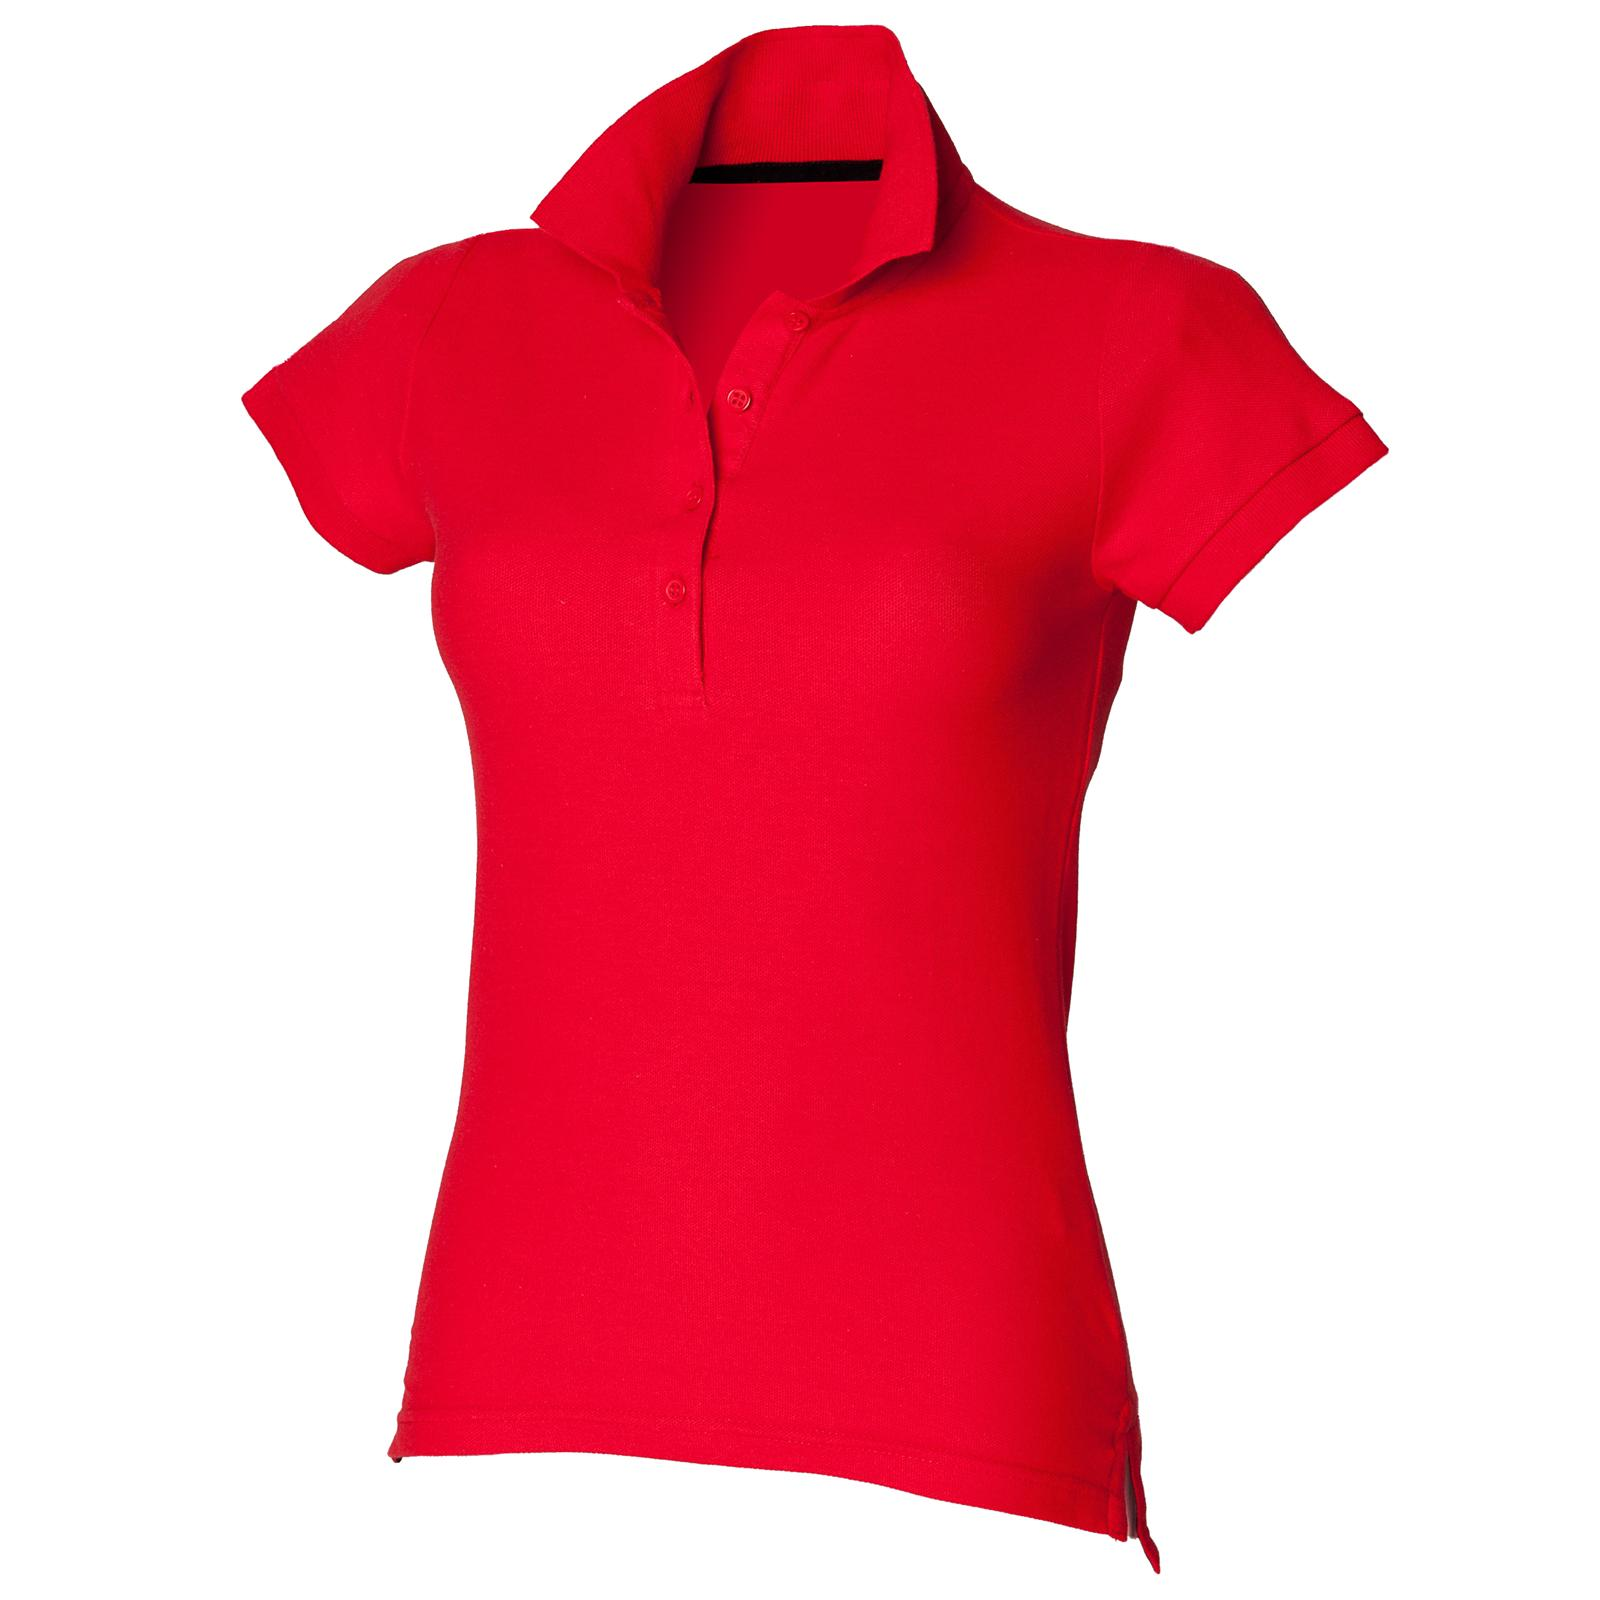 new skinni fit womens ladies cotton club fitted pique polo